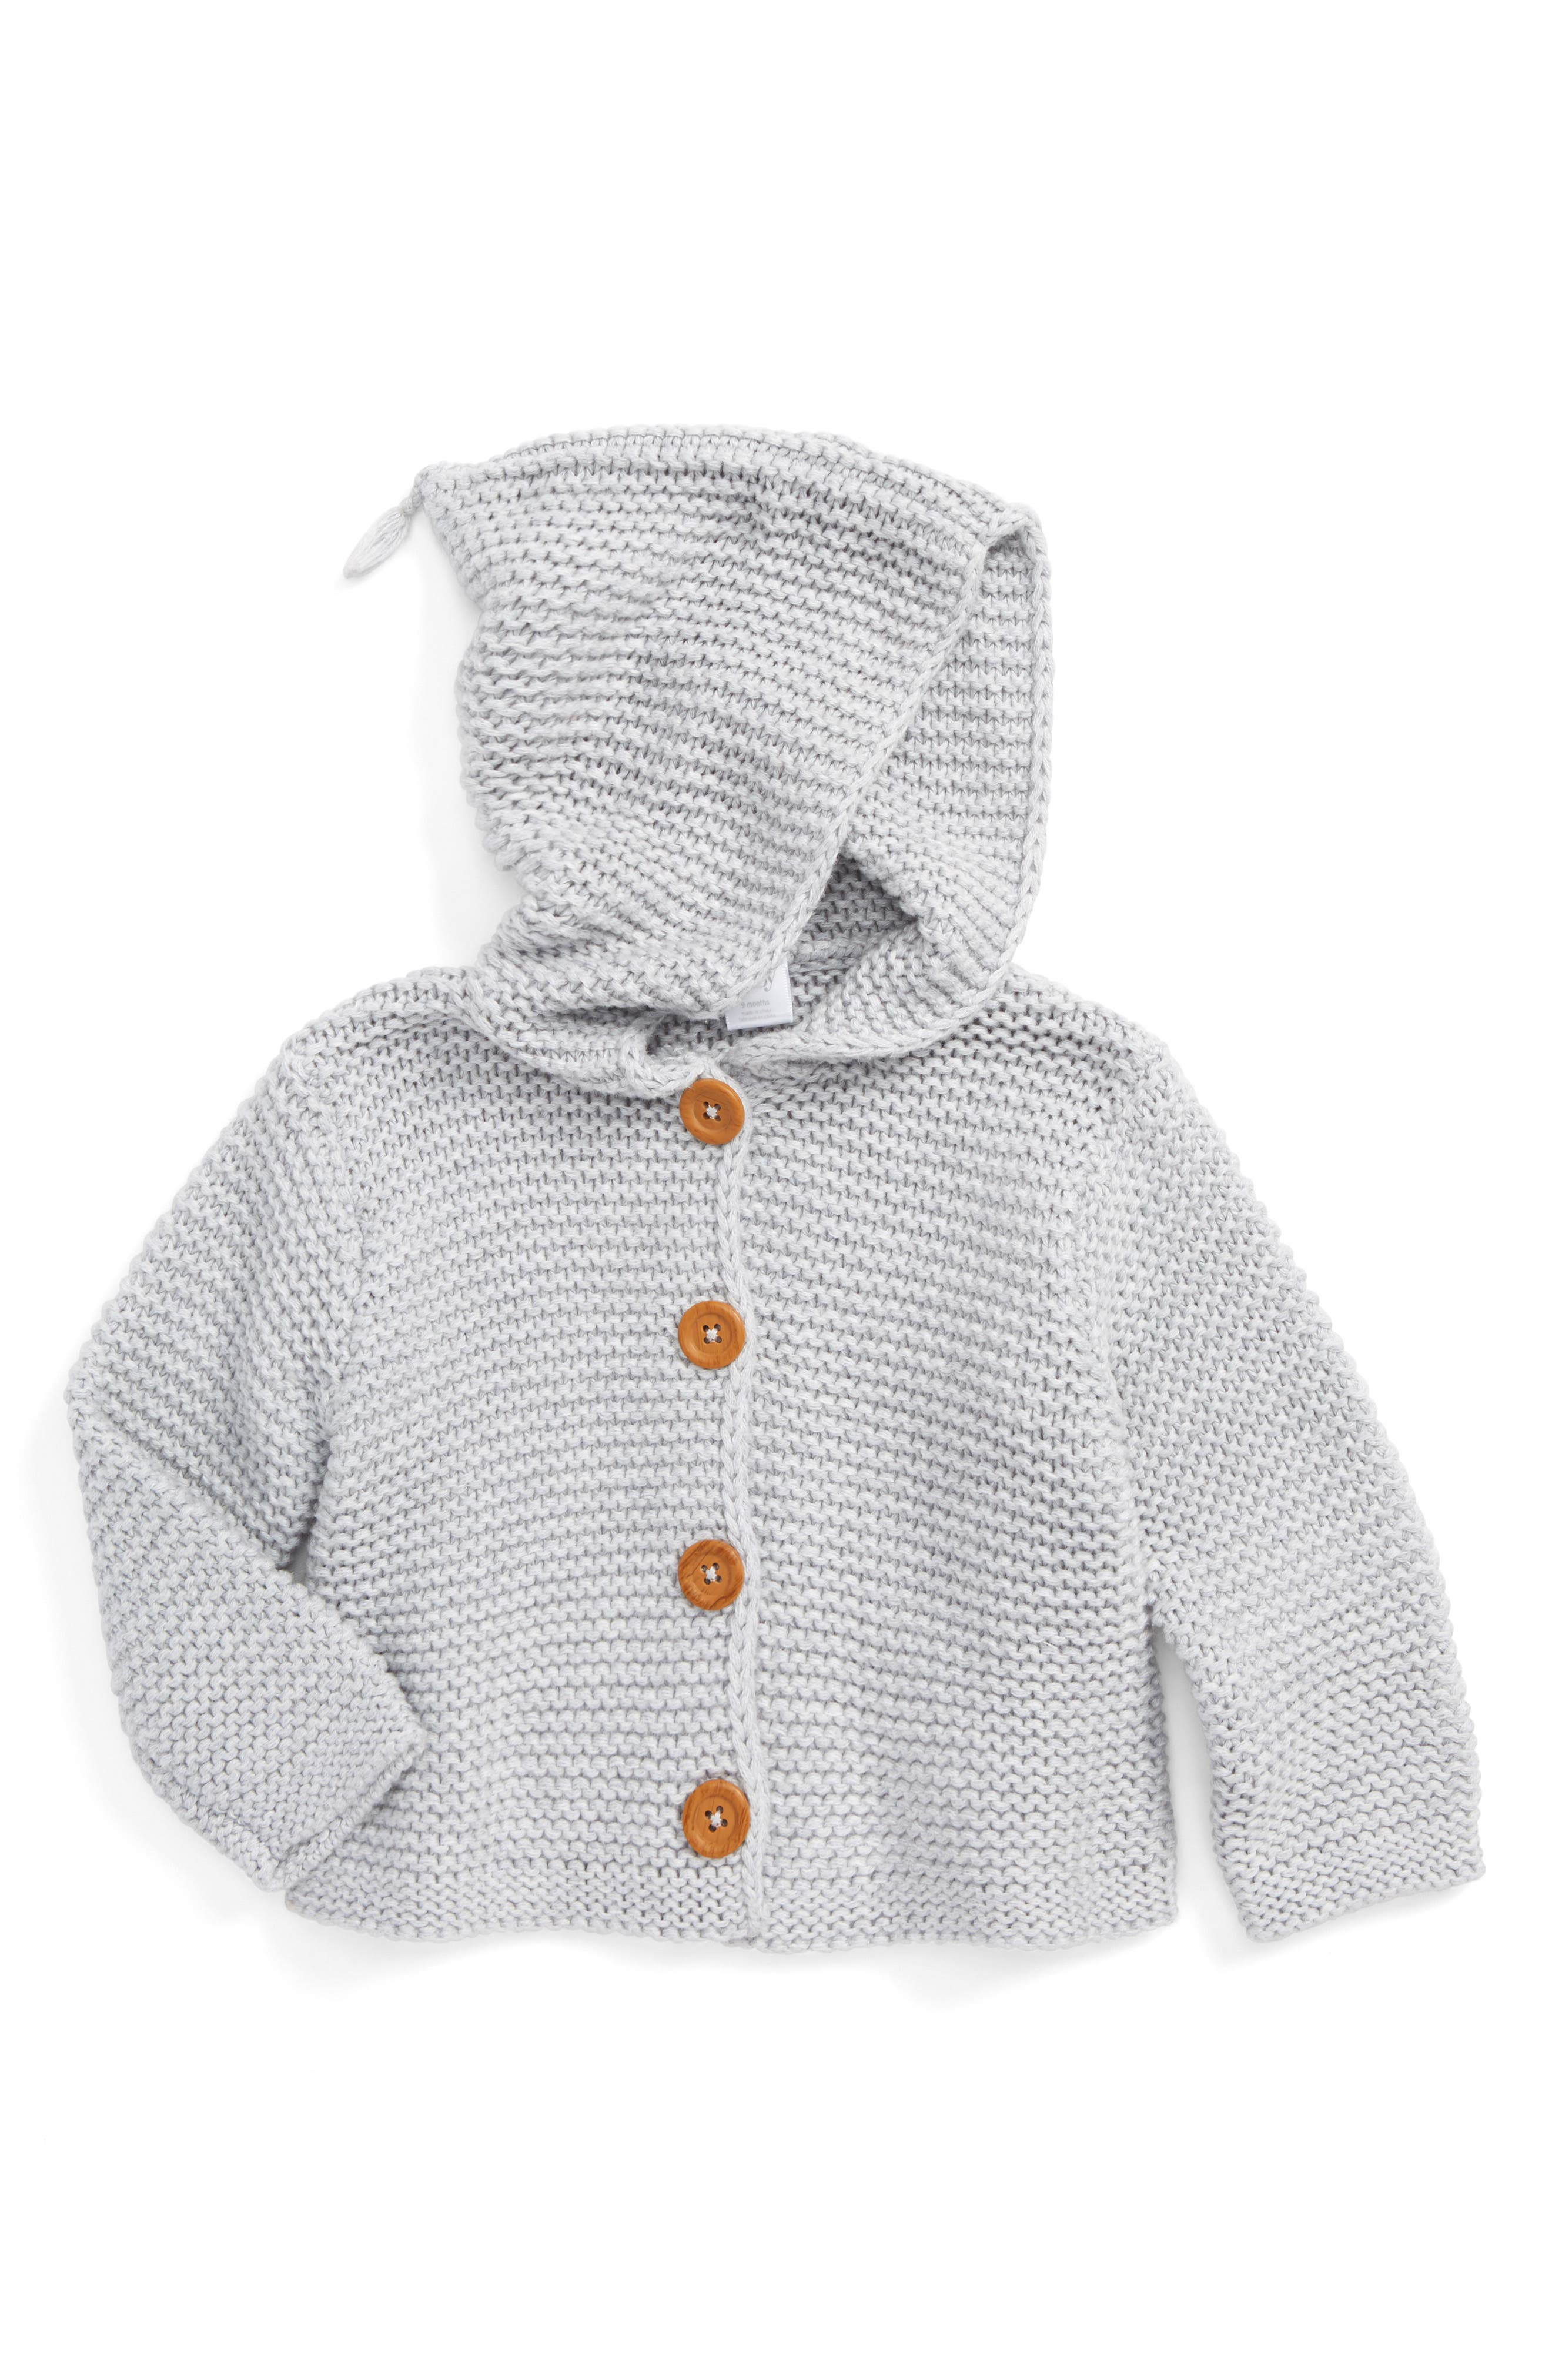 Organic Cotton Hooded Cardigan,                             Main thumbnail 1, color,                             GREY ASH HEATHER